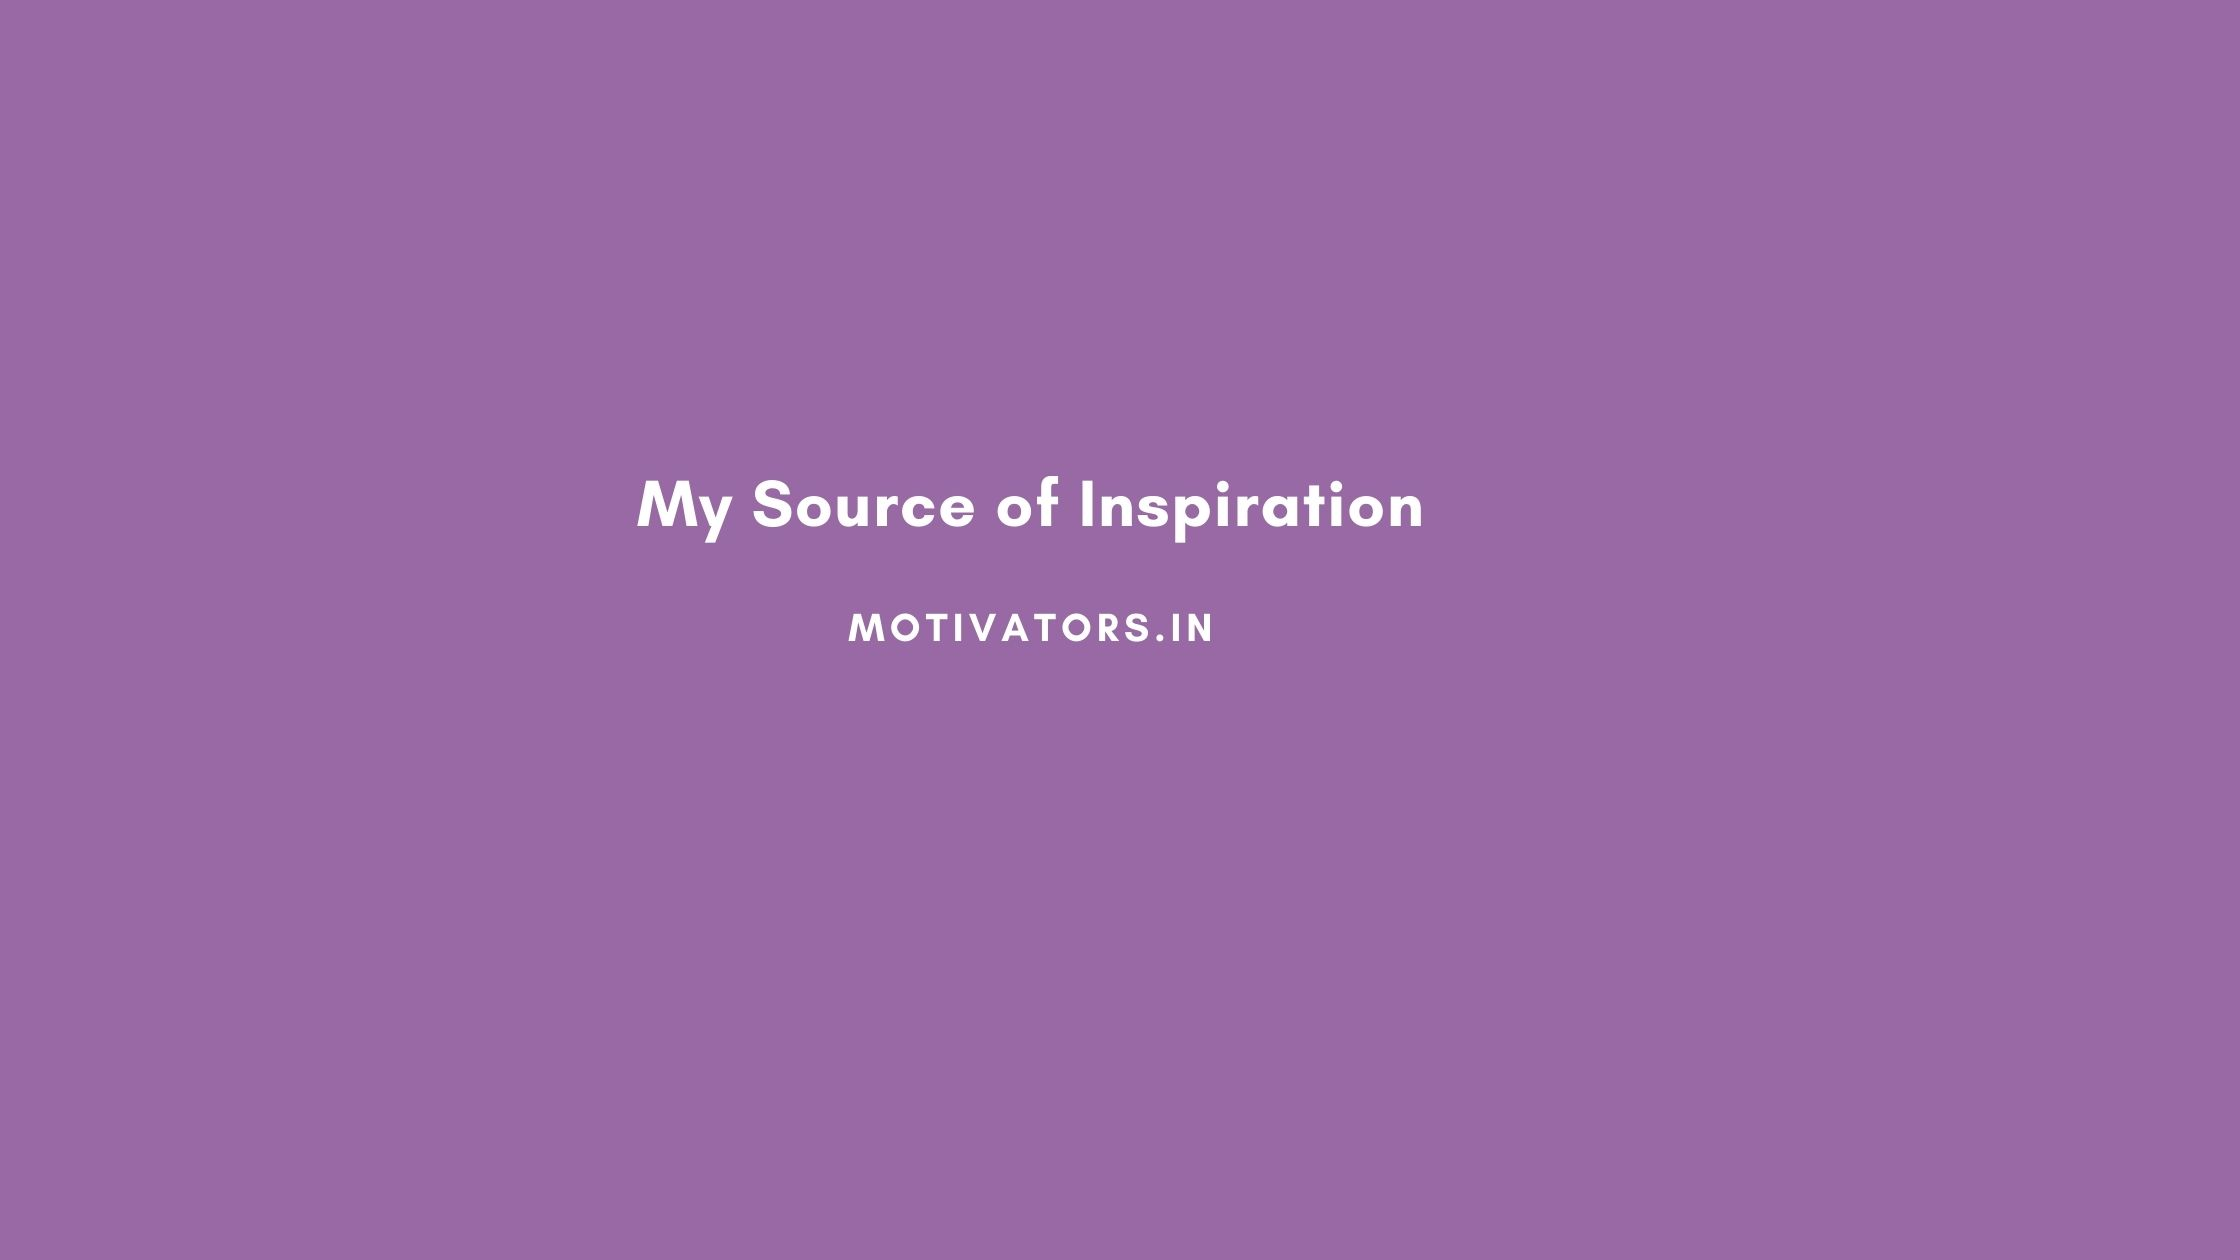 My Source of Inspiration